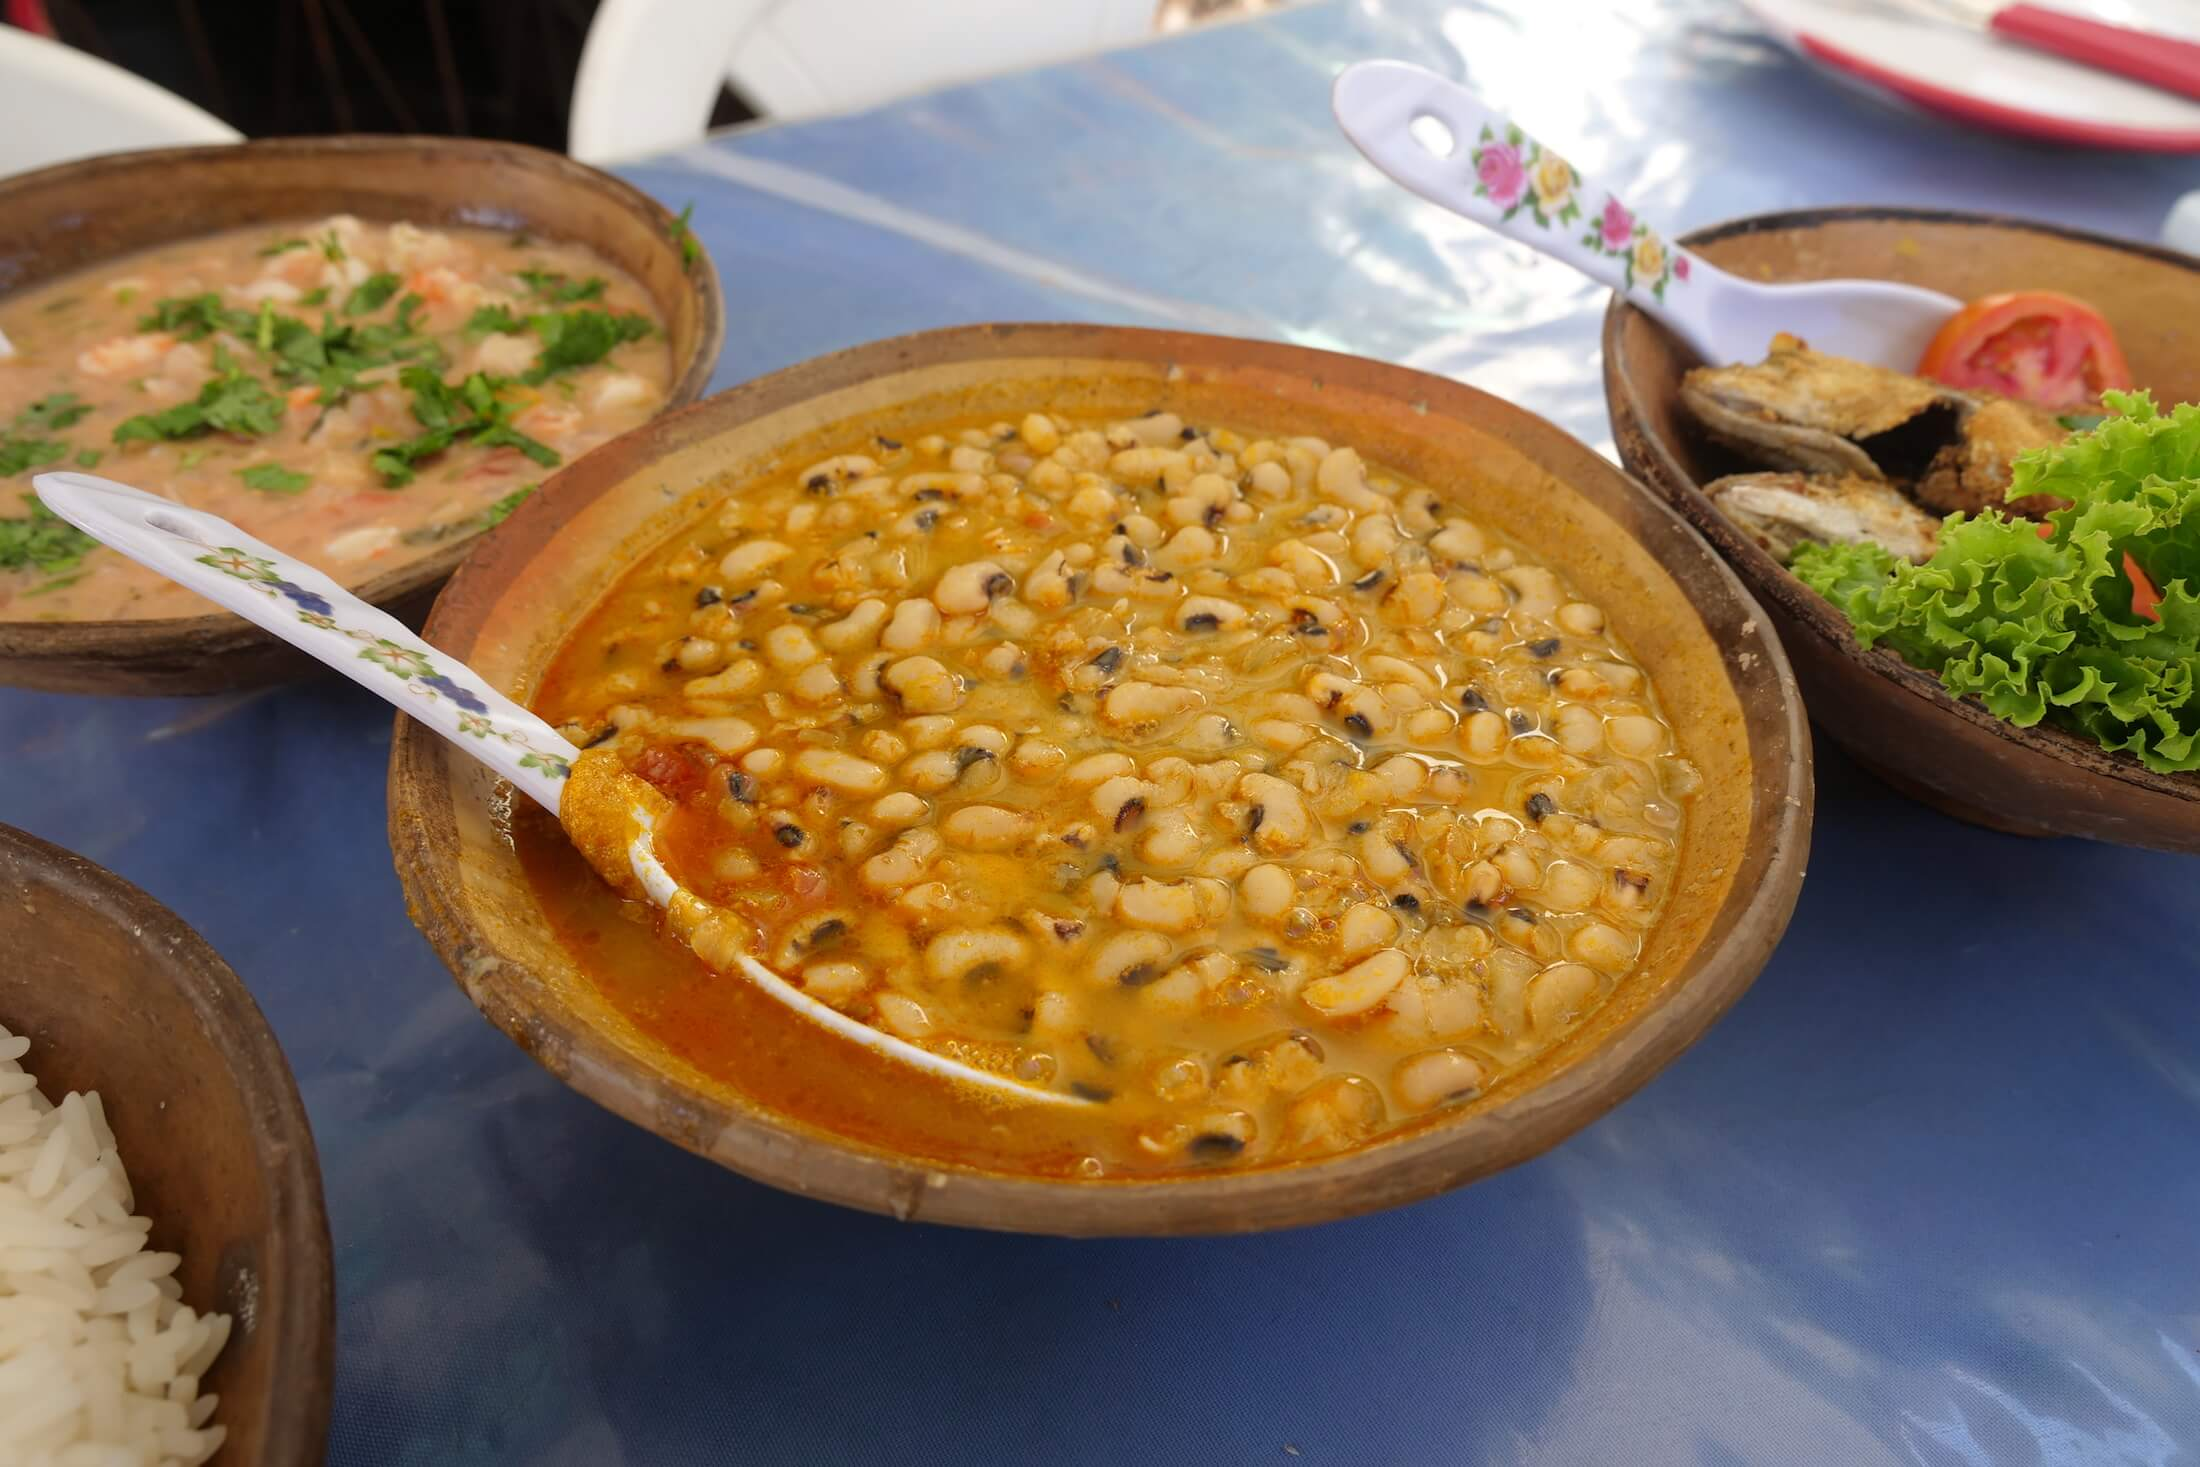 Another Salvador favorite food, like Acarajé here in Bahia, you just have to try the black-eyed peas